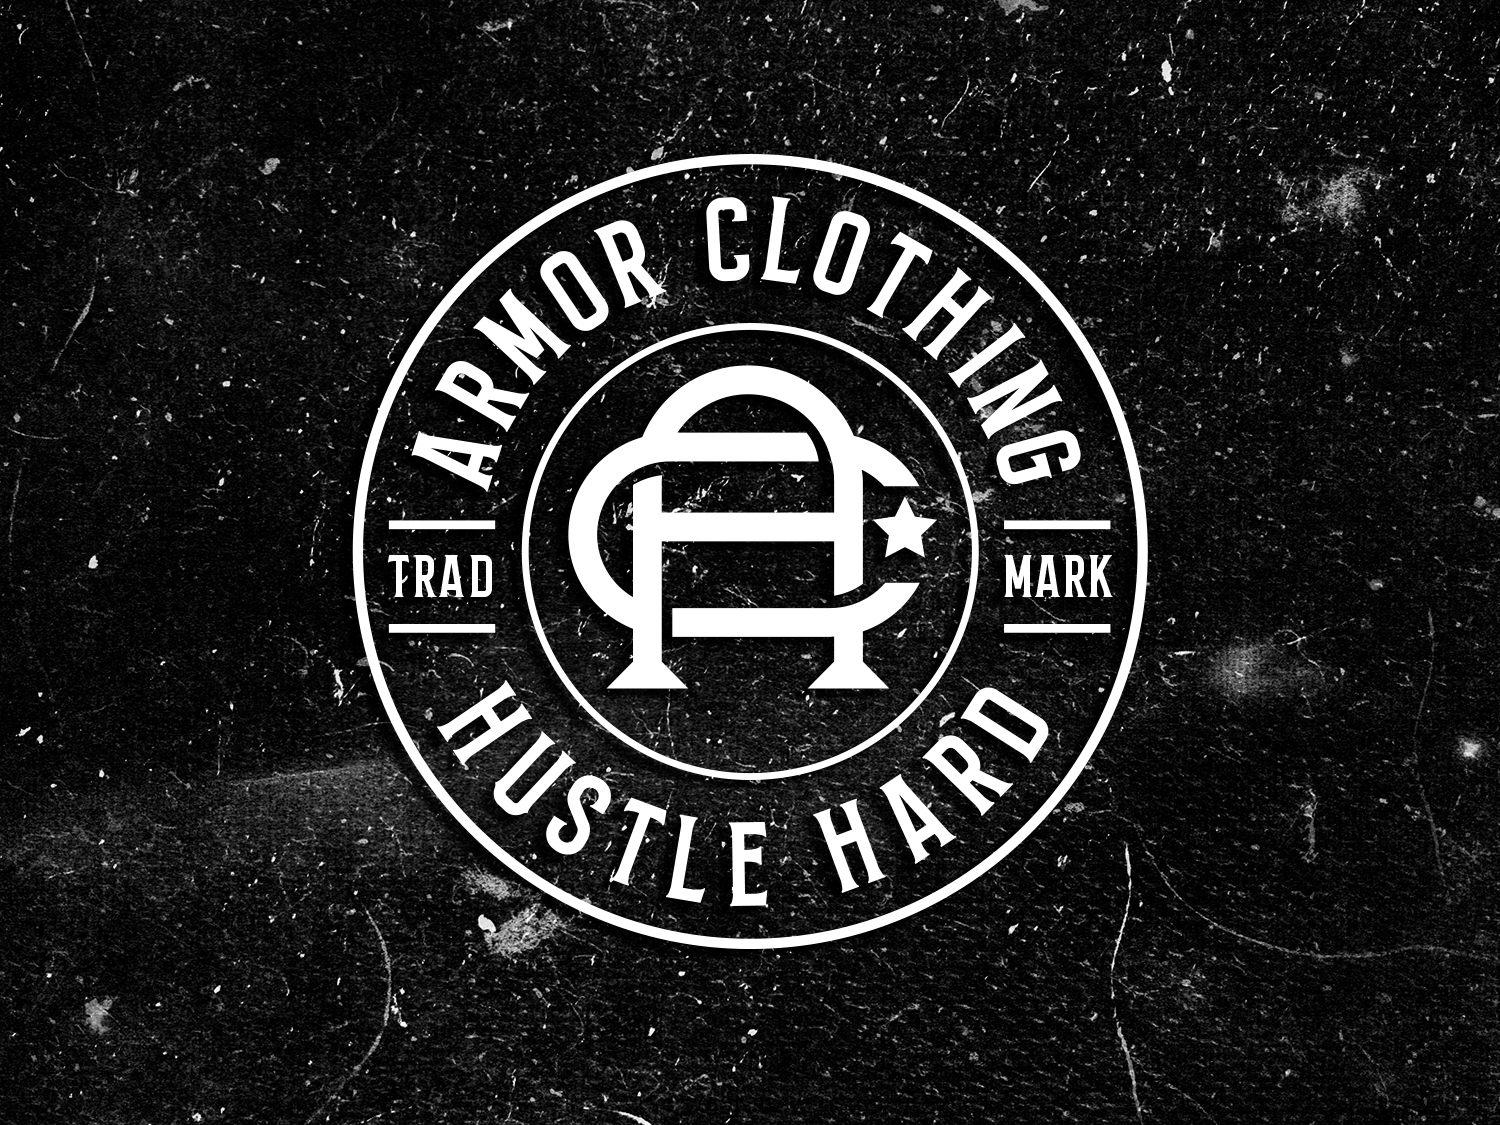 Armor Clothing black clothing company badge clothing label clothing brand apparel design apparel brand clothing line